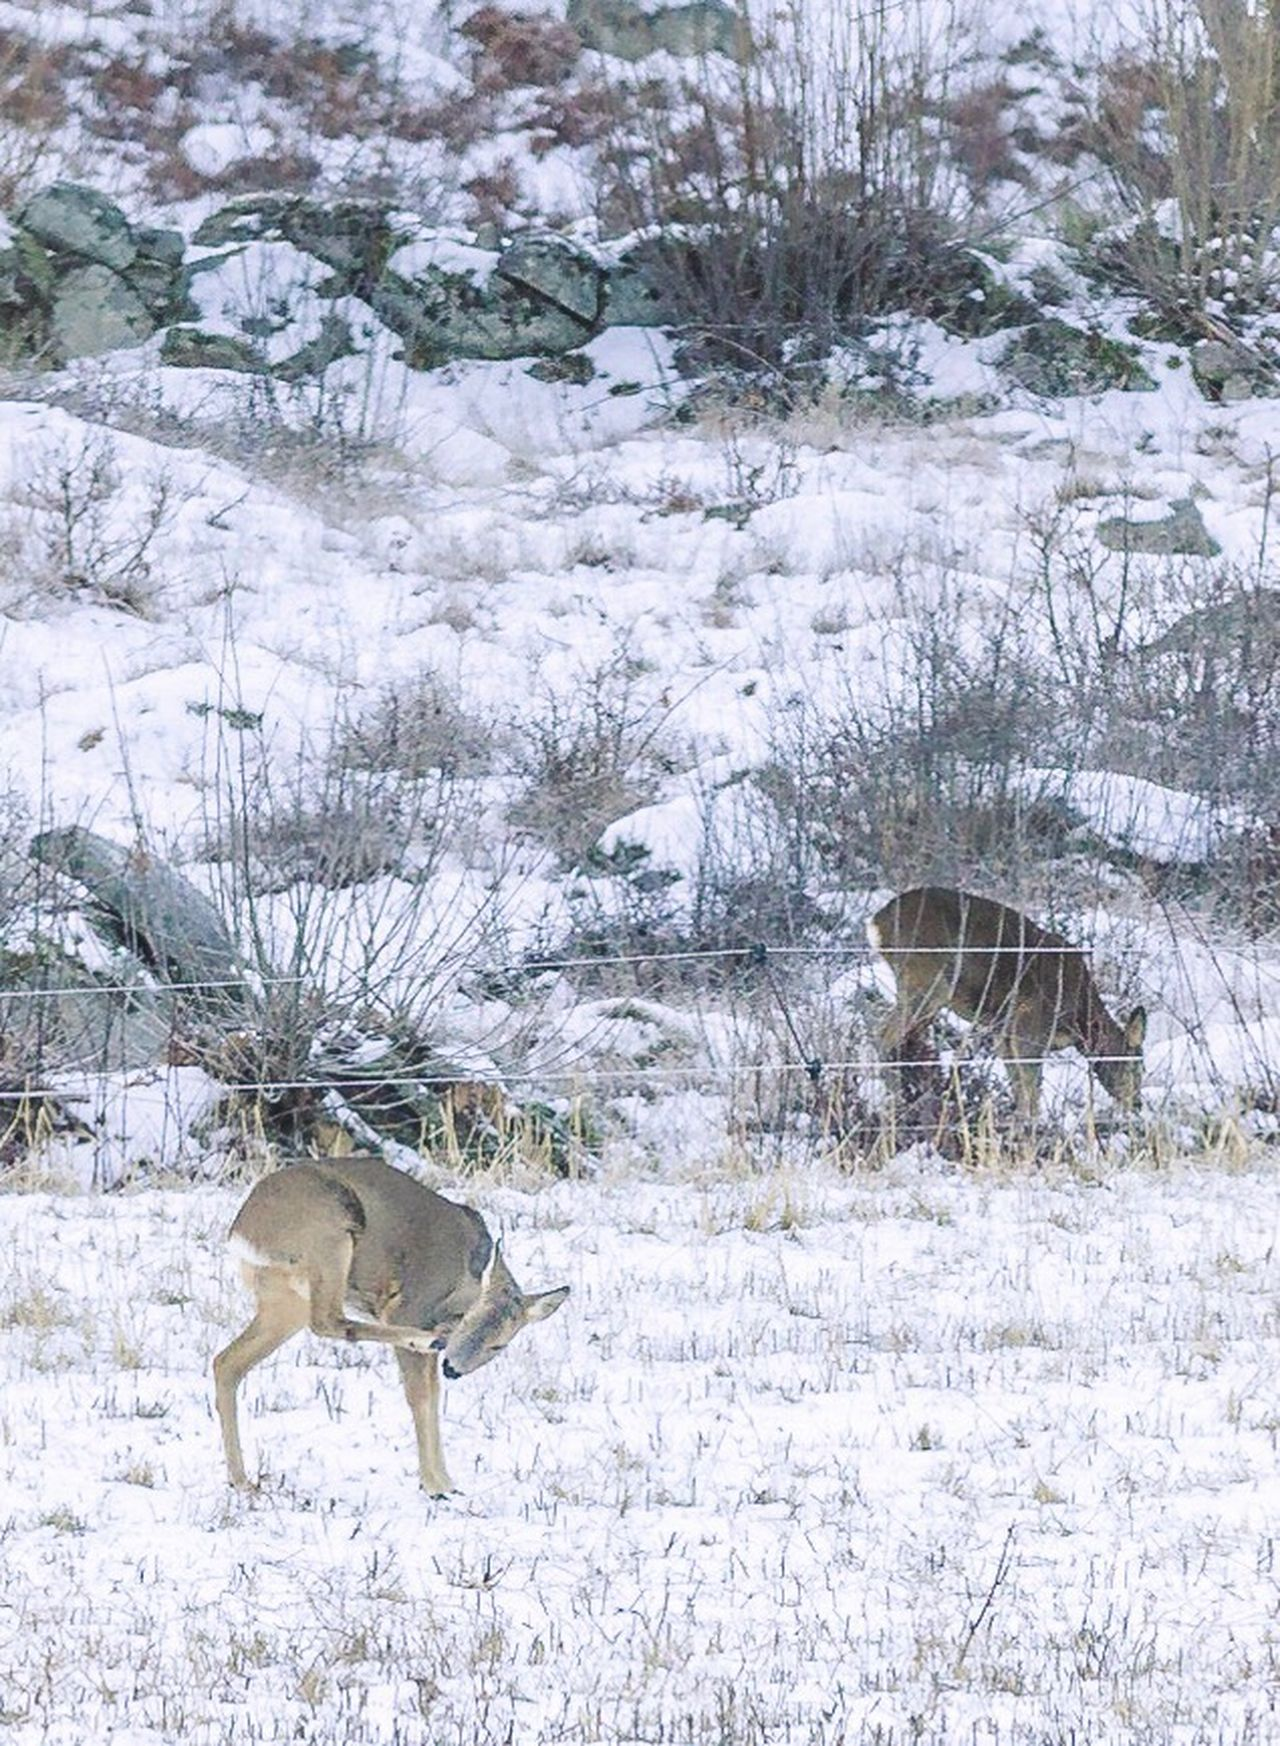 ITCHY & SCRATCHY | One of the perks of being surrounded by forest - The Wildlife | Roe Deer Deer Sweden Animal Themes Animals In The Wild Animal Snow Winter Cold Temperature Weather Nature Outdoors Bare Tree One Animal Deer Tree No People Mammal Reindeer Day Beauty In Nature Snowing Antler Nature Winter